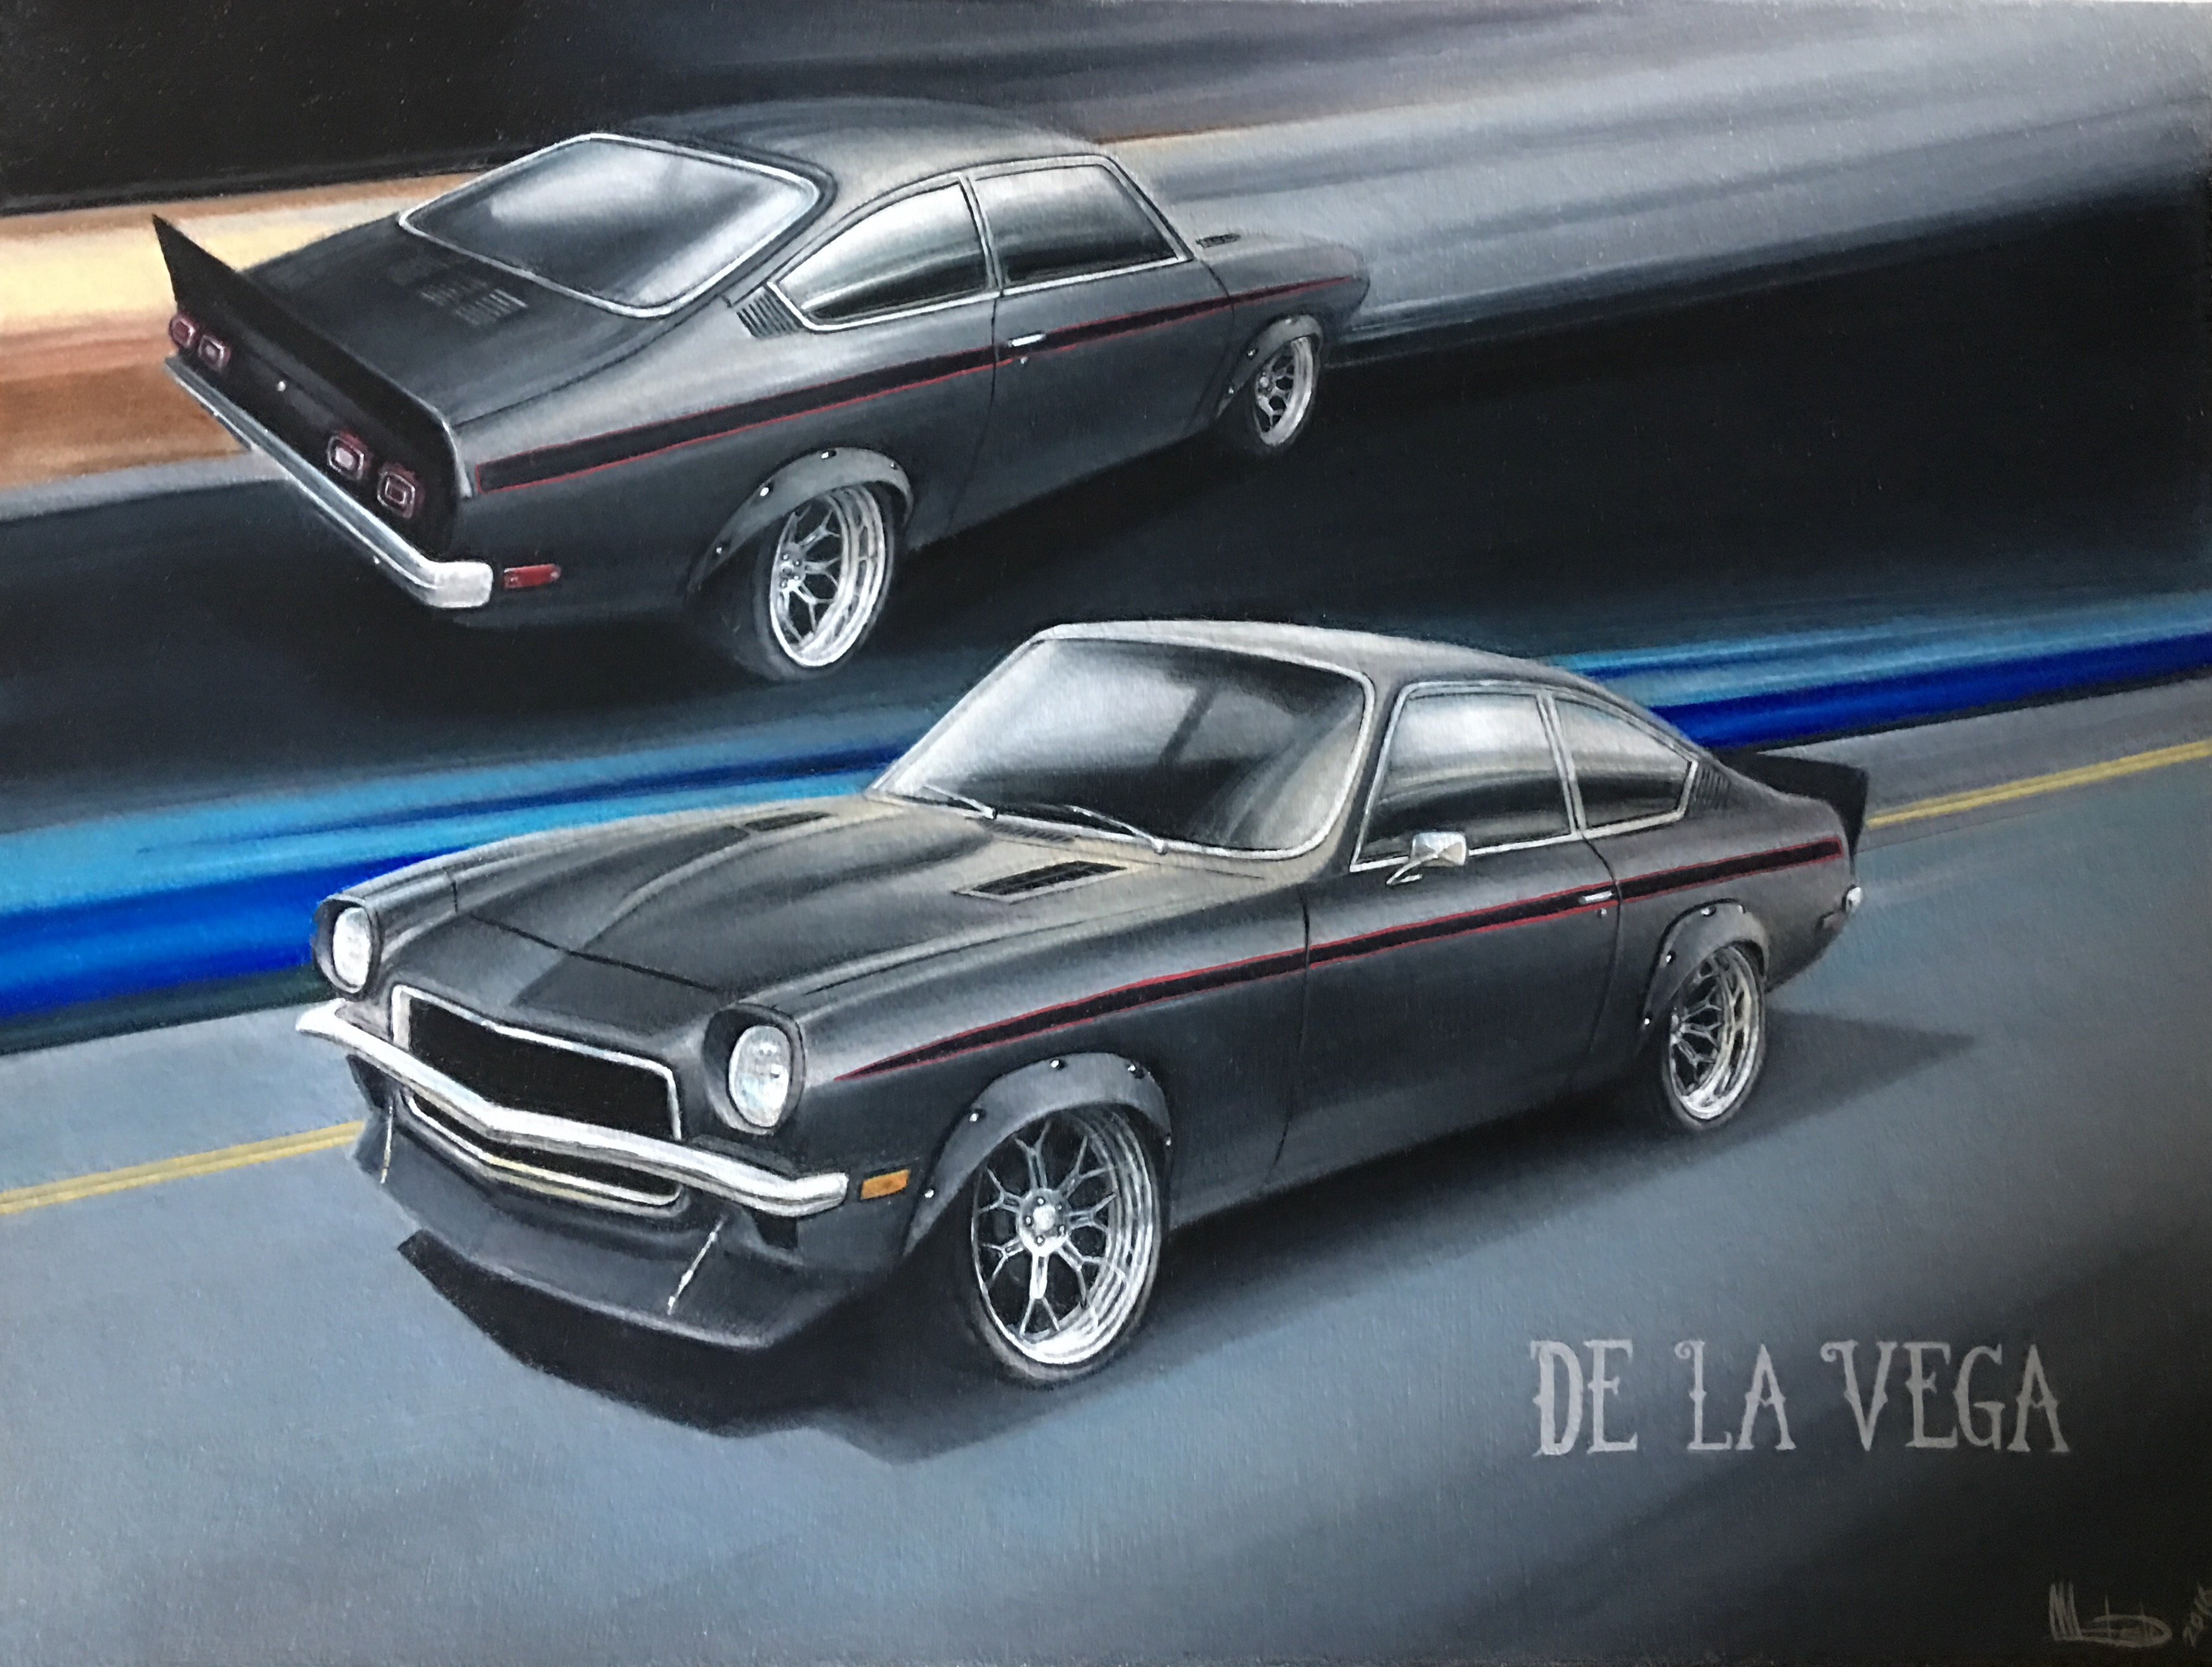 Introducing Project De La Vega: A Chevy Performance LTG Powered Vega Rocket!